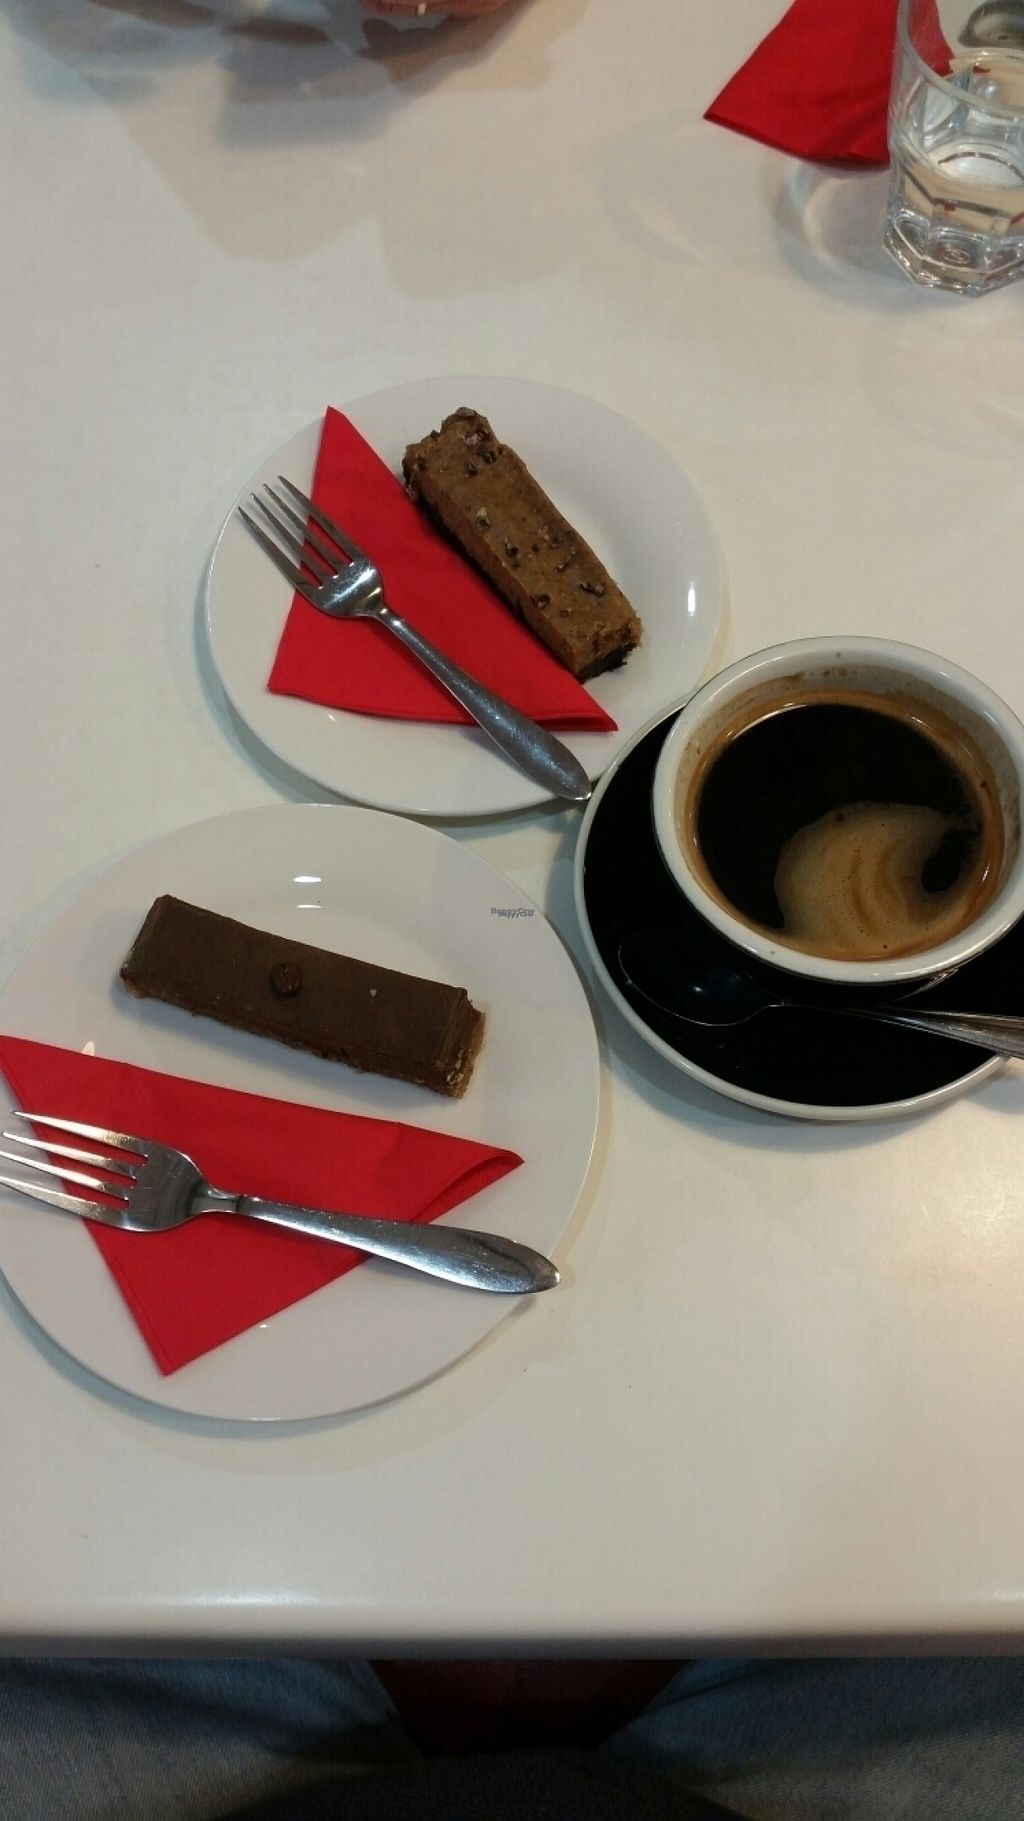 "Photo of Reality Bites Cafe  by <a href=""/members/profile/AndyTheVWDude"">AndyTheVWDude</a> <br/>Vegan Espresso Slice & Salted Caramel Slice - Yum!  <br/> November 4, 2016  - <a href='/contact/abuse/image/48232/186487'>Report</a>"